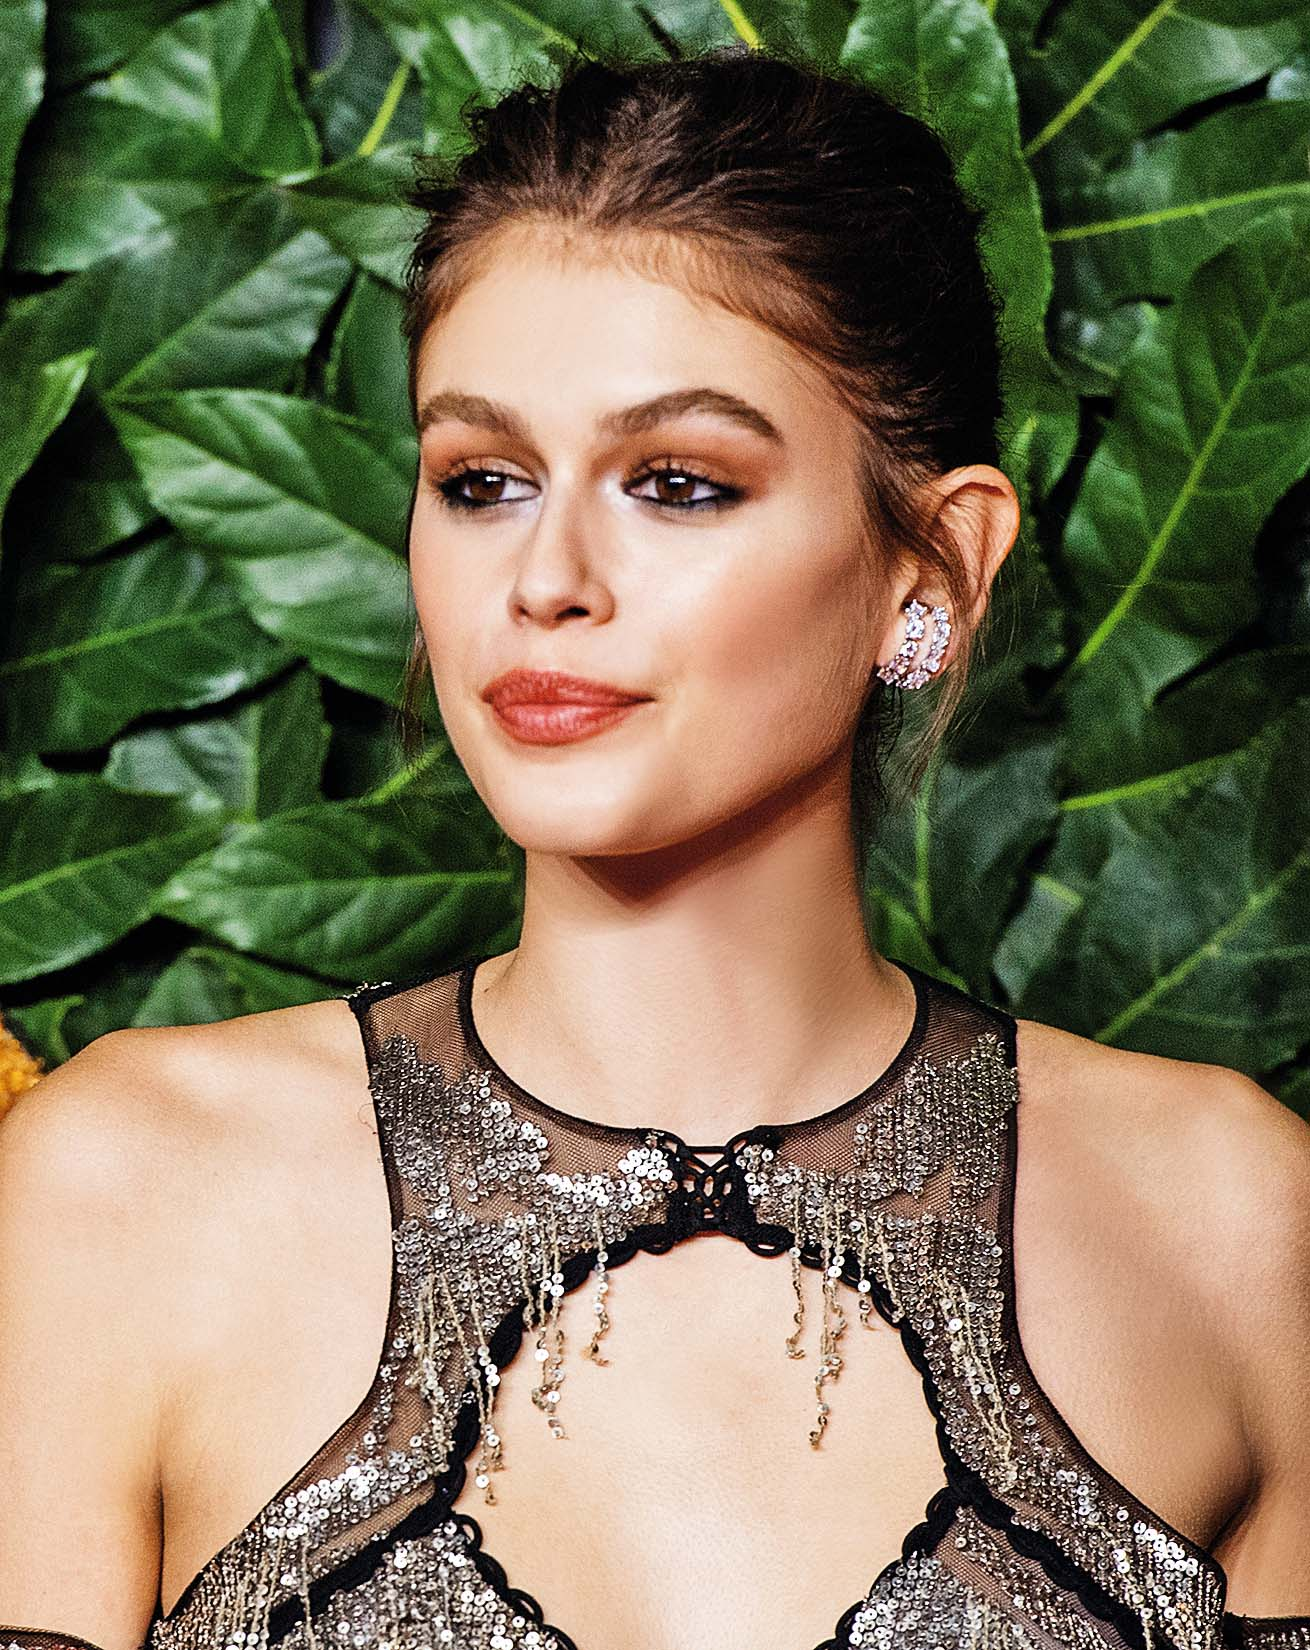 LONDON, ENGLAND - DECEMBER 10:   Kaia Gerber arrives at The Fashion Awards 2018 In Partnership With Swarovski at Royal Albert Hall on December 10, 2018 in London, England. (Photo by Samir Hussein/Samir Hussein/WireImage)